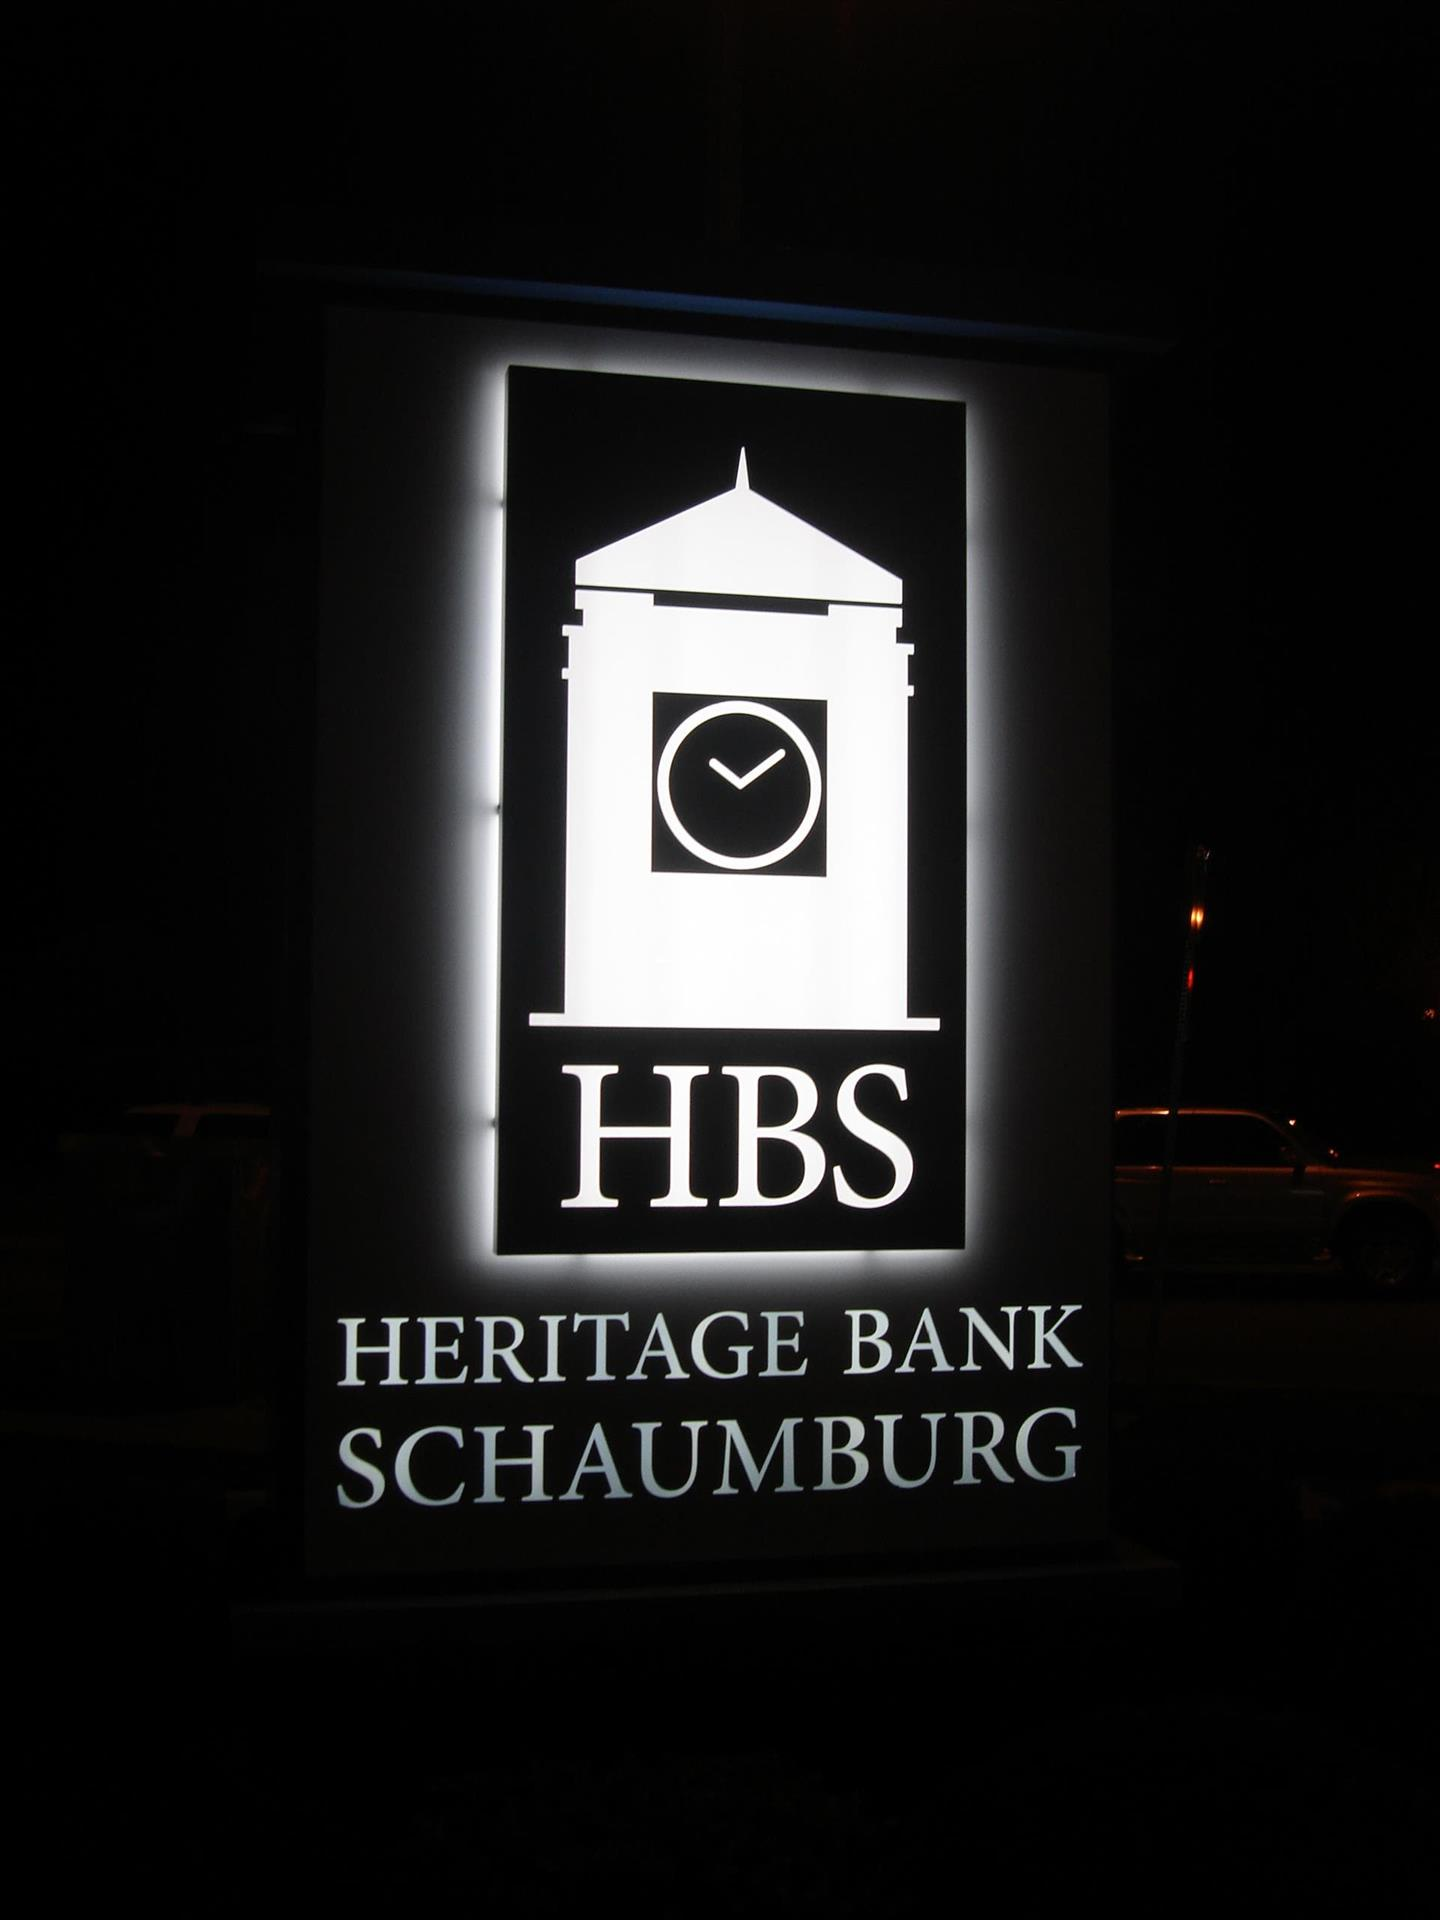 Heritage Bank Schaumburg Exterior Sign